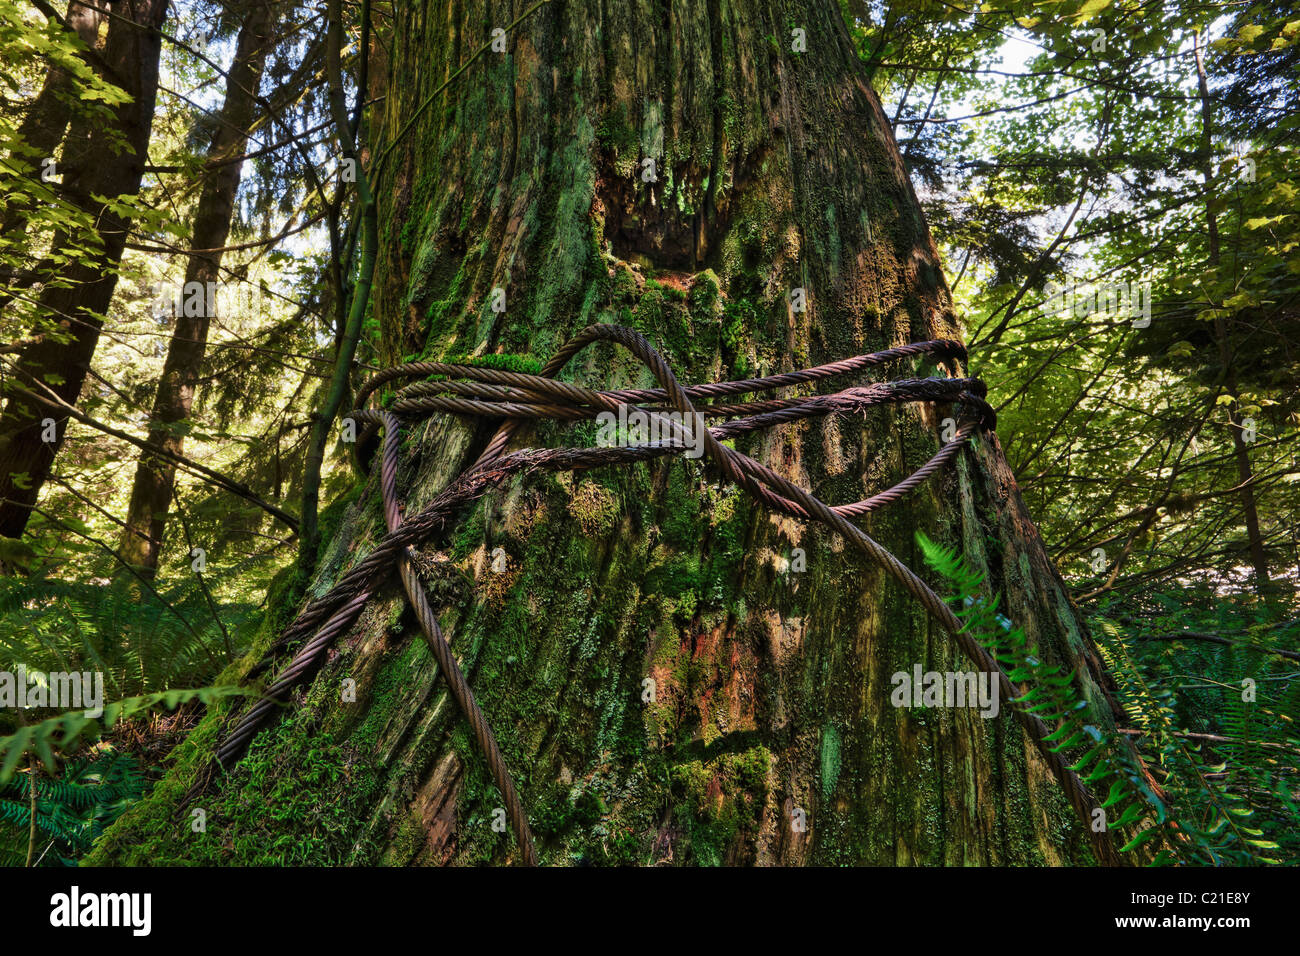 An old growth tree stump bound up by a rusting steel cable. - Stock Image